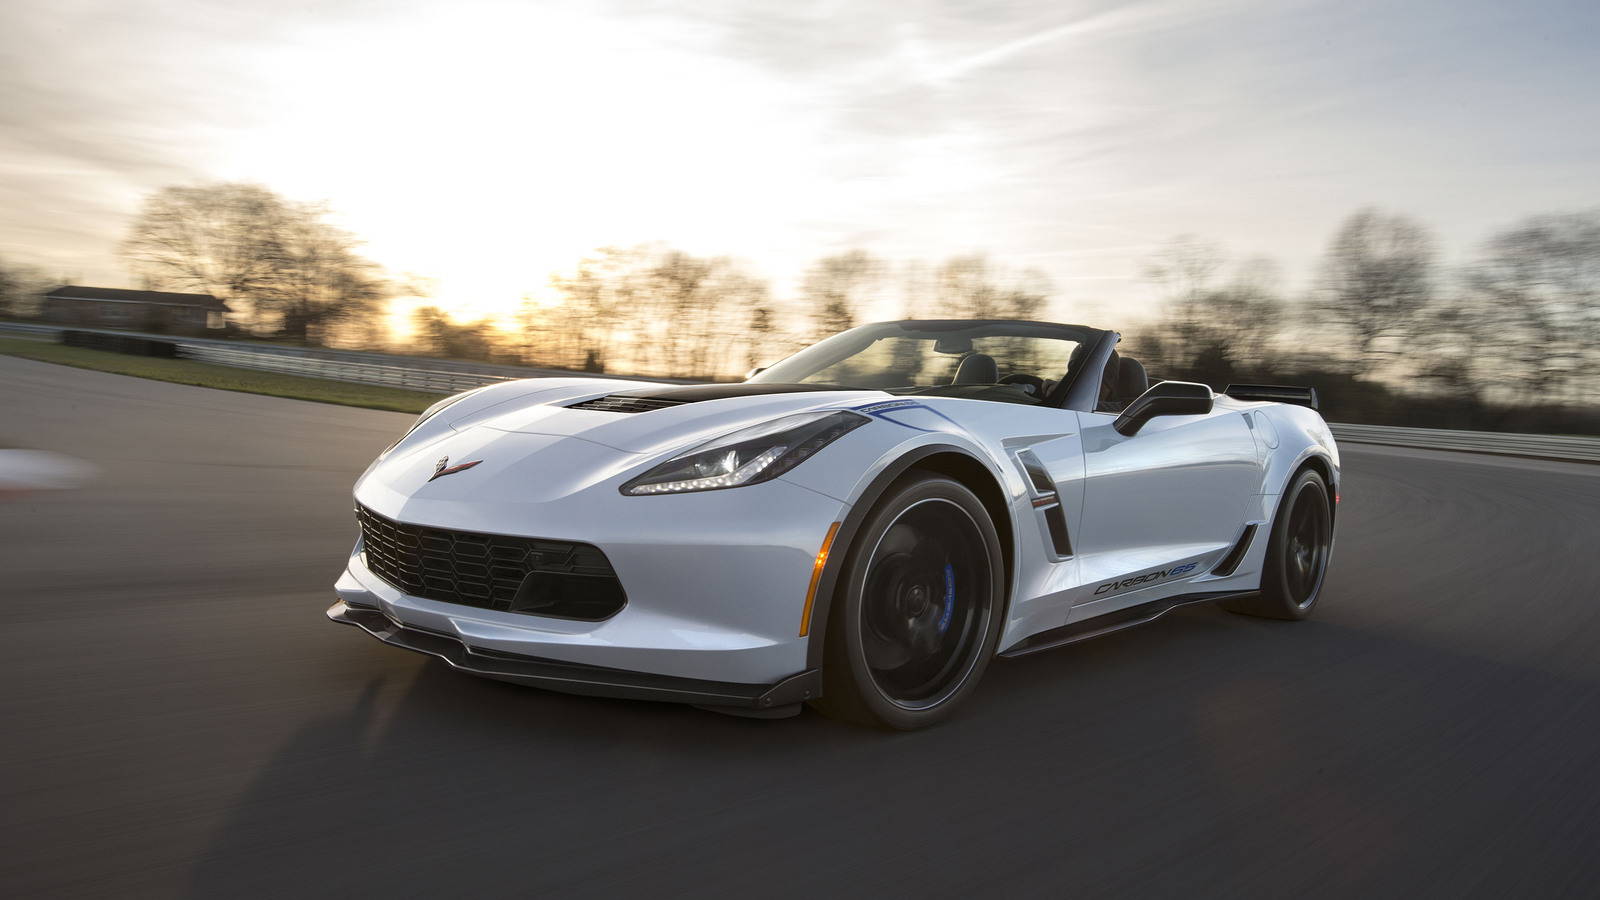 2018-chevrole-corvette-carbon-65-edition-convertible-do.jpg